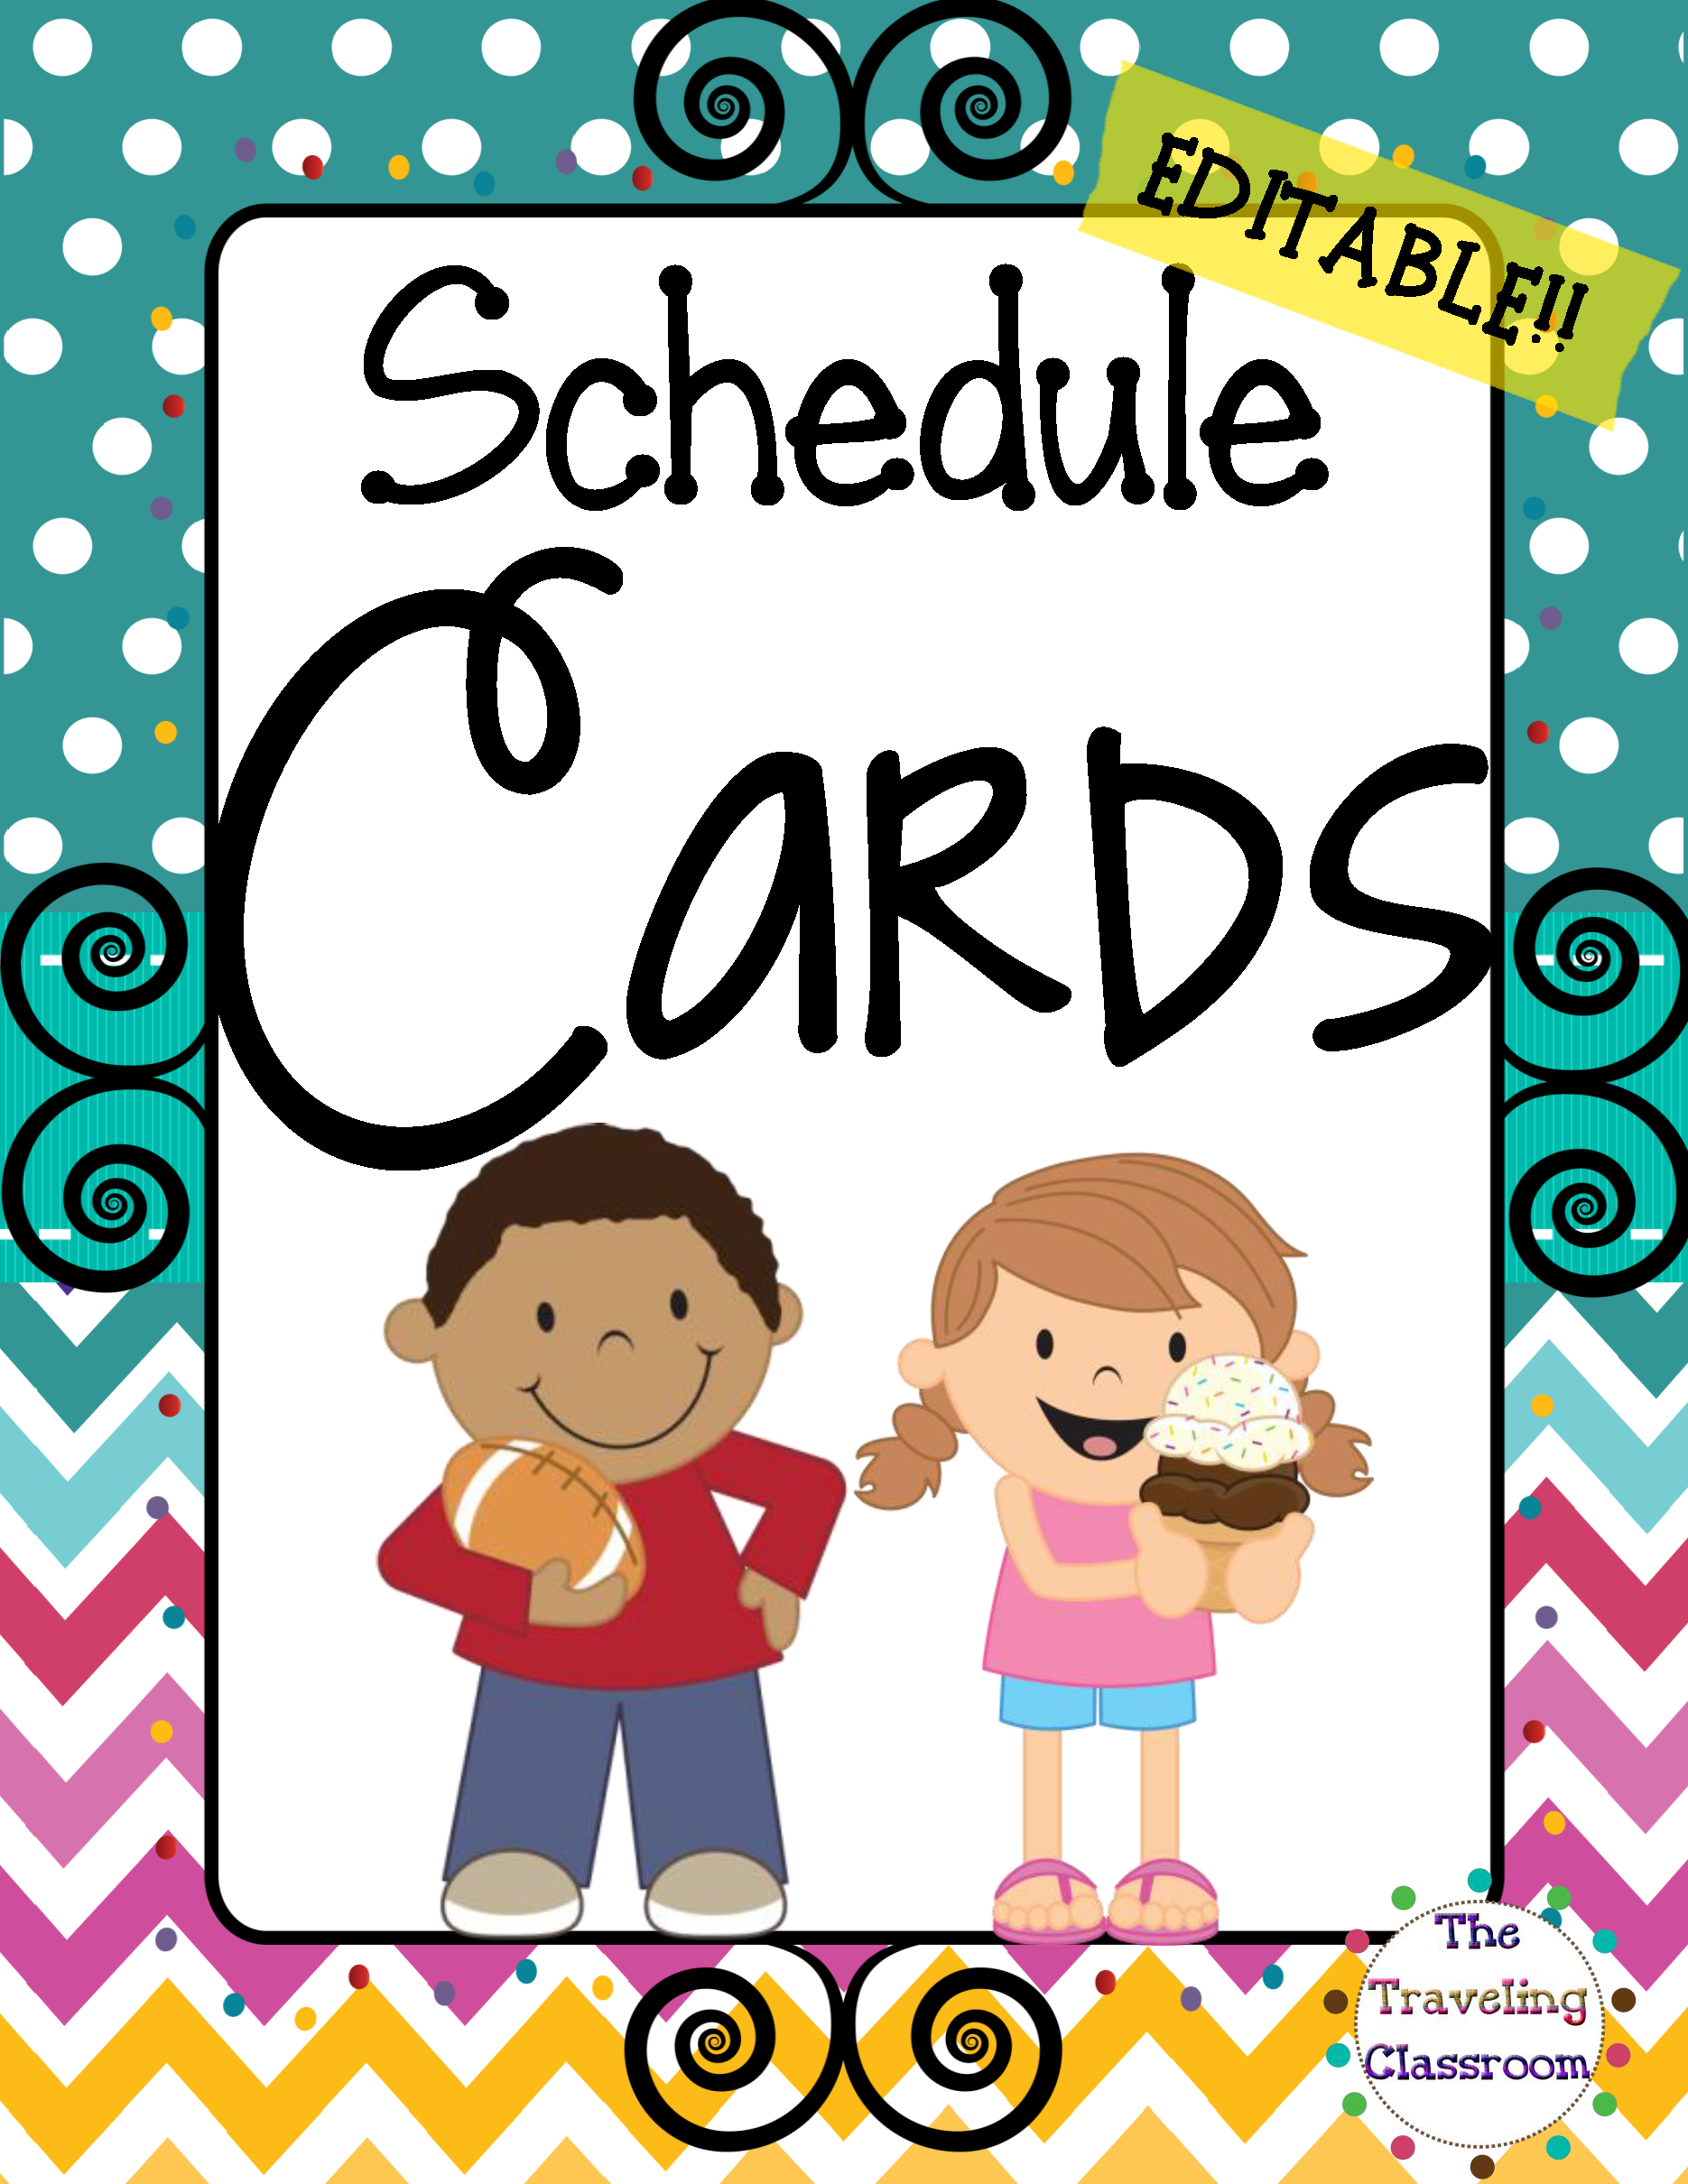 Schedule Cards {Chevron Polka Dot Theme} | Schedule cards, Polka dot ...